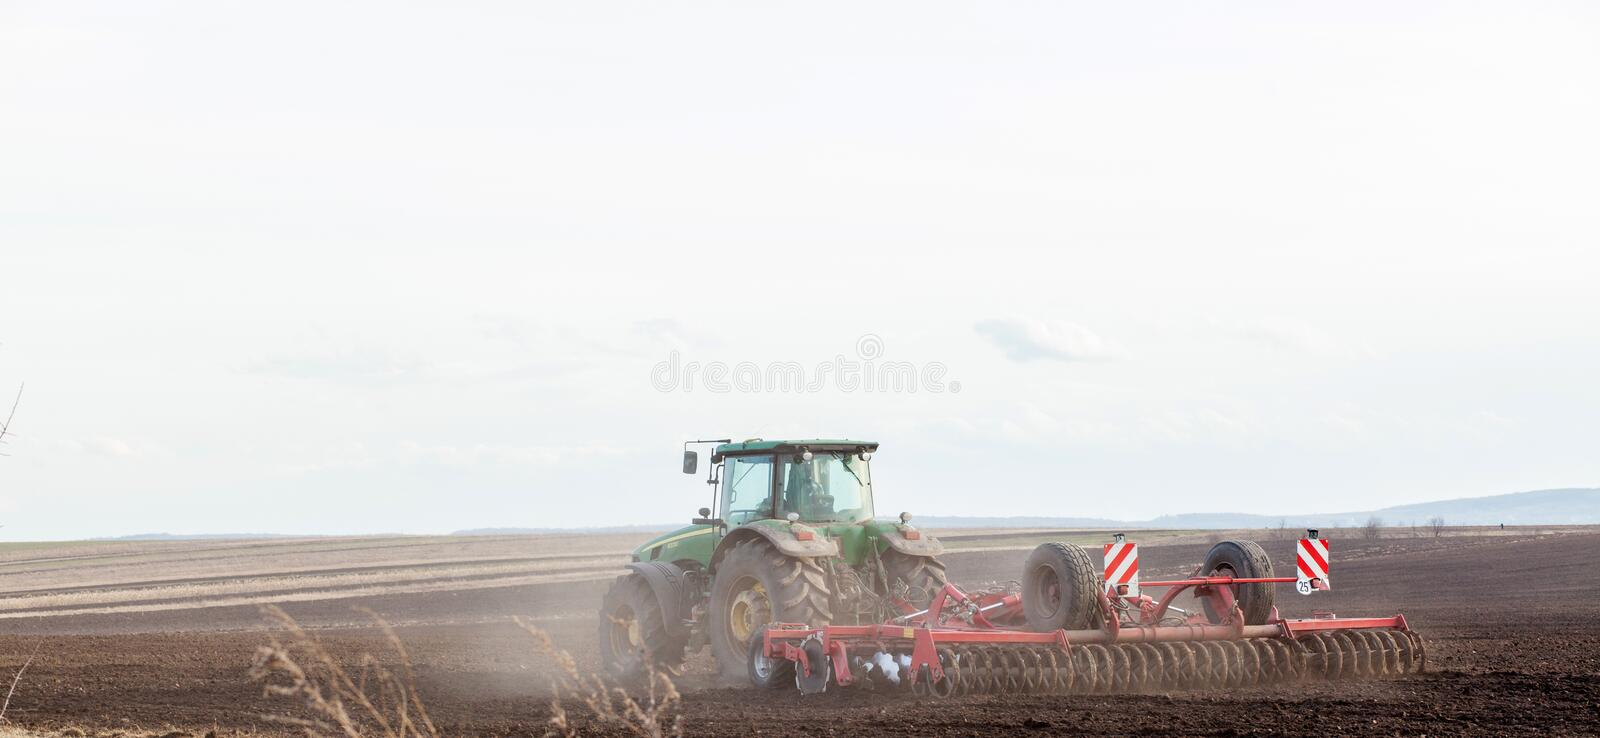 KIEV, UKRAINE - MARCH 27, 2019: Agriculture,tractor preparing land with seedbed cultivator as part of pre seeding activities in royalty free stock photos